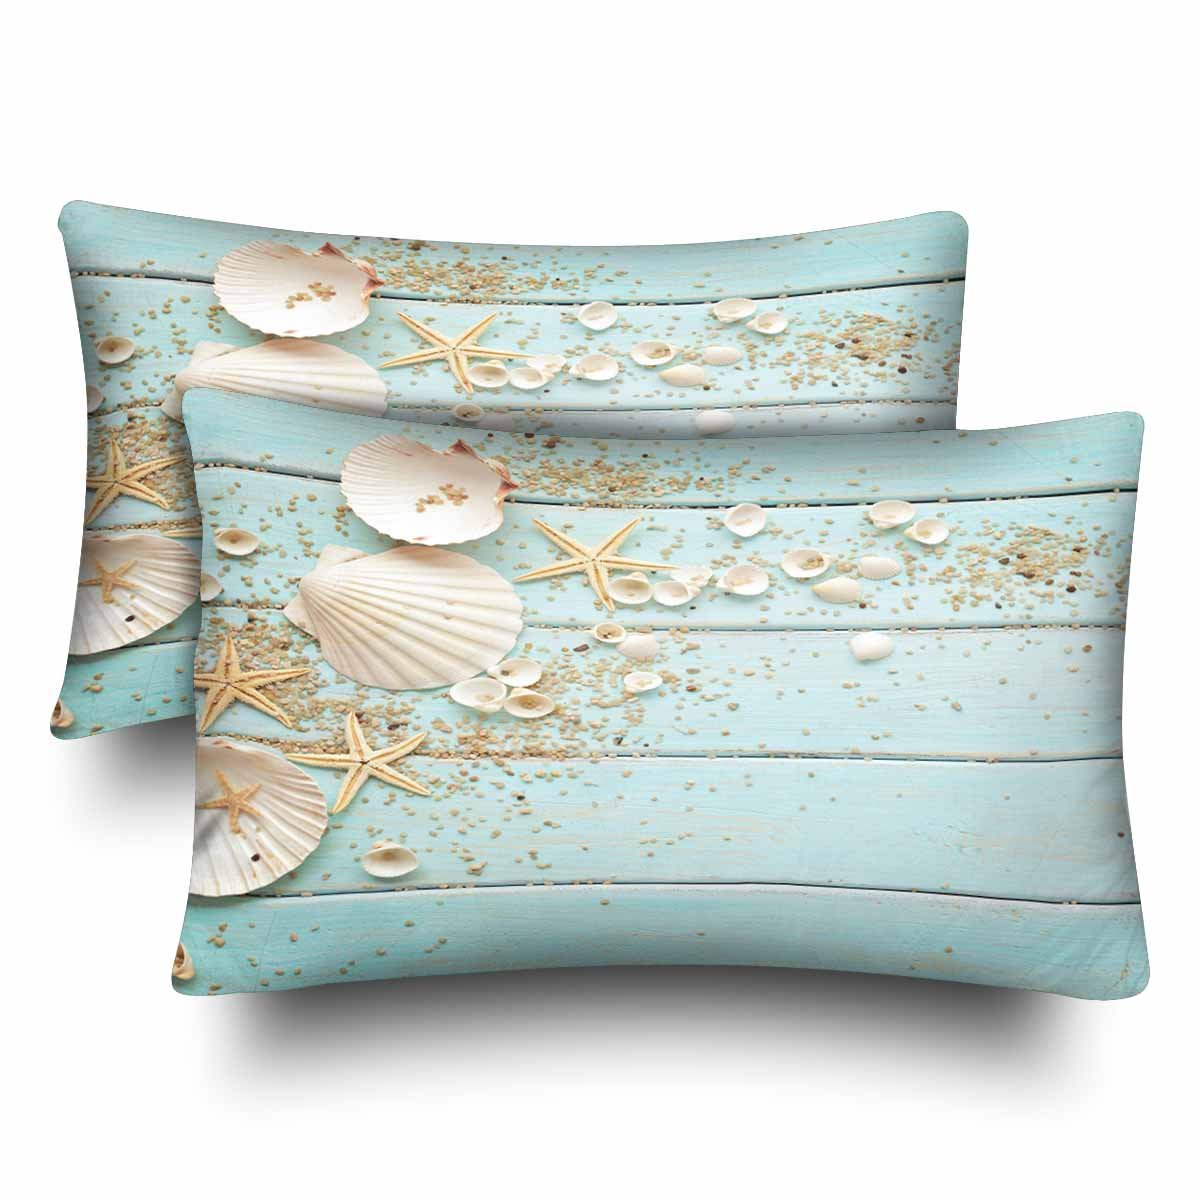 InterestPrint Starfish Seashell Wood Summer Hawaii Beach Seaside Nautical Pillow Cases Pillowcase Standard Size 20x30 Set of 2, Rectangle Pillow Covers Protector for Home Couch Sofa Decorative